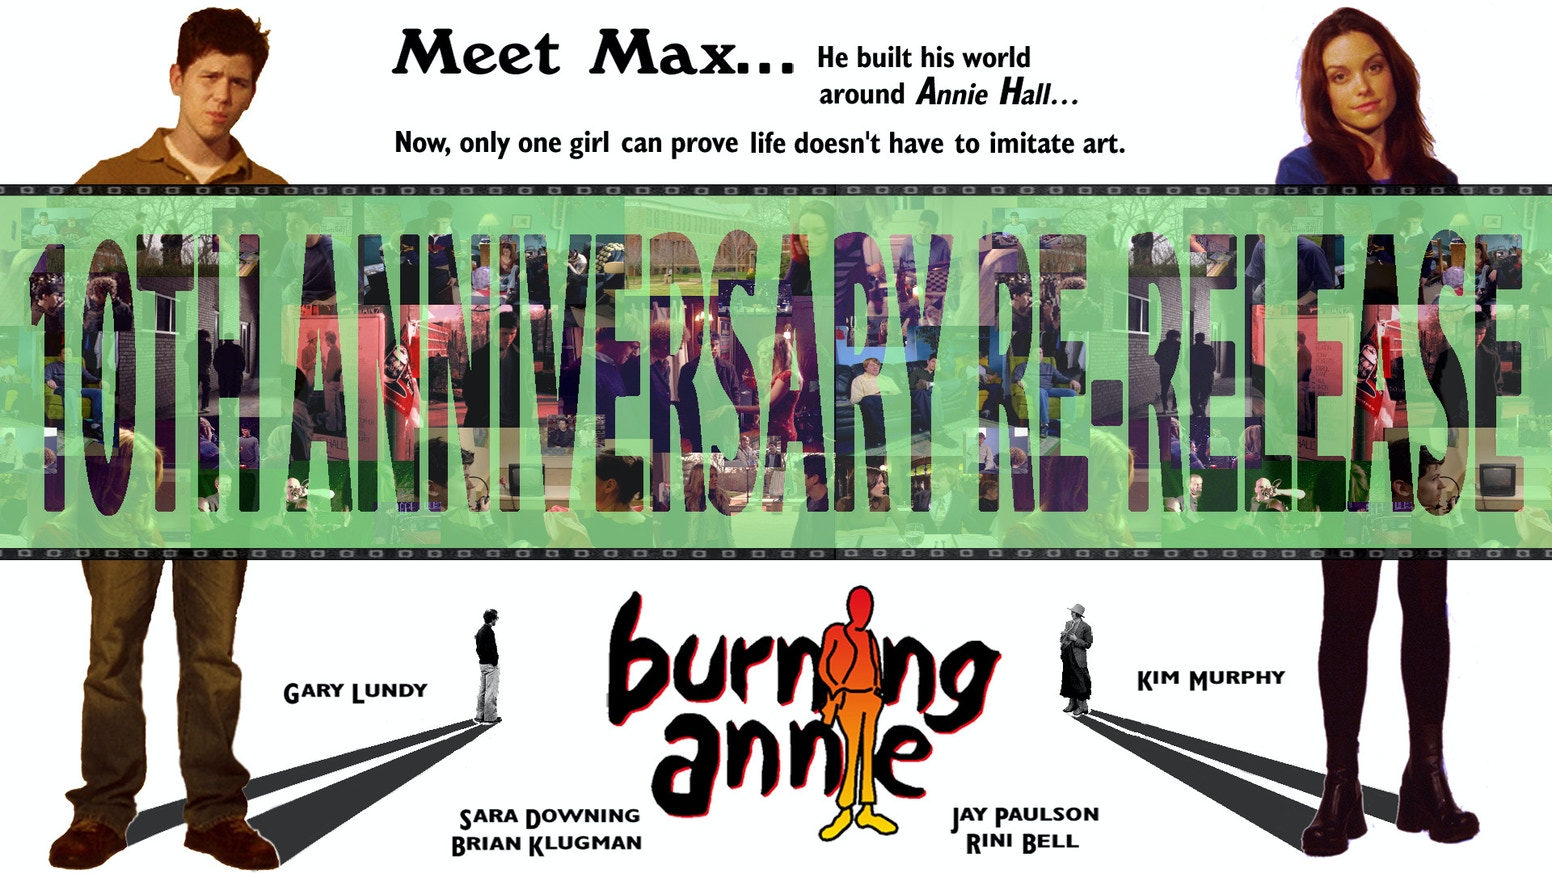 We're re-premiering our film BURNING ANNIE on its 10th anniversary with an IFP Media Center screening party & HD release on VOD!